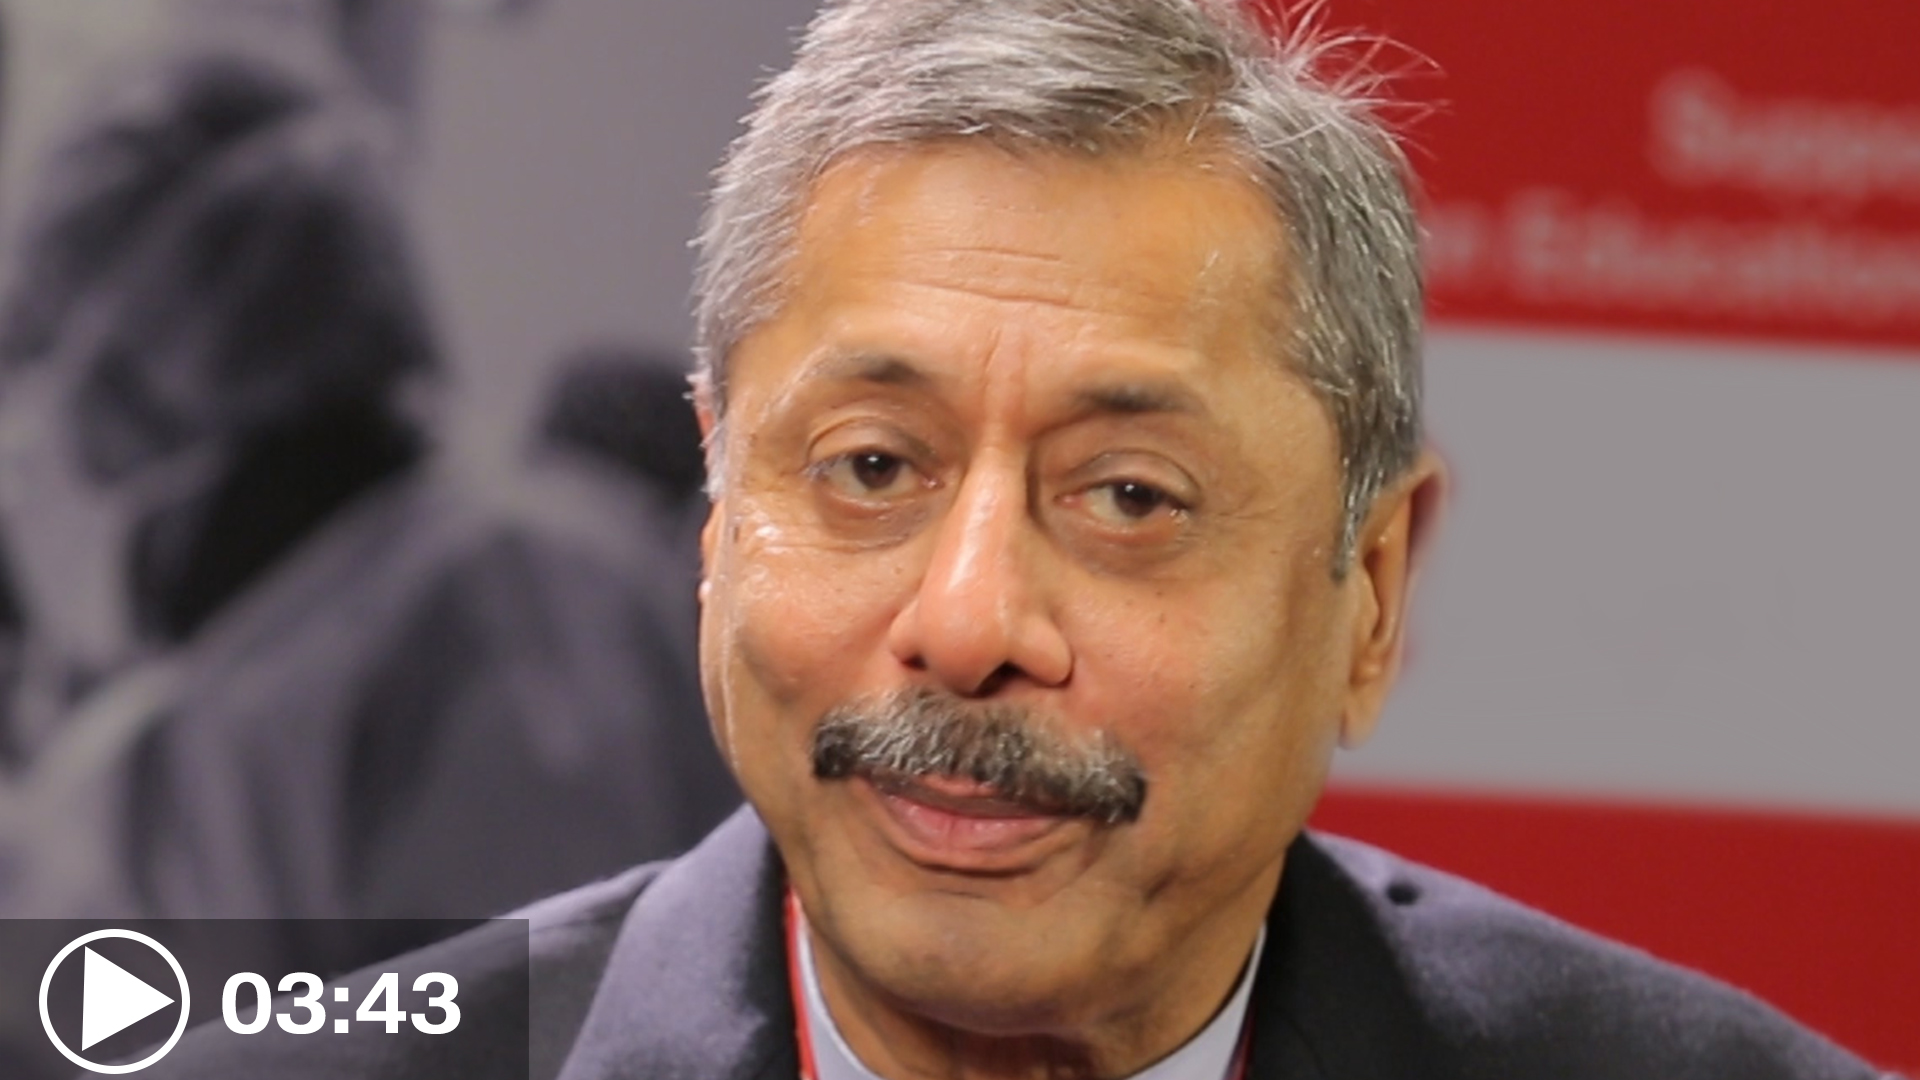 Dr Naresh Trehan, Chairman and Managing Director, Medanta-The Medicity, Therefore